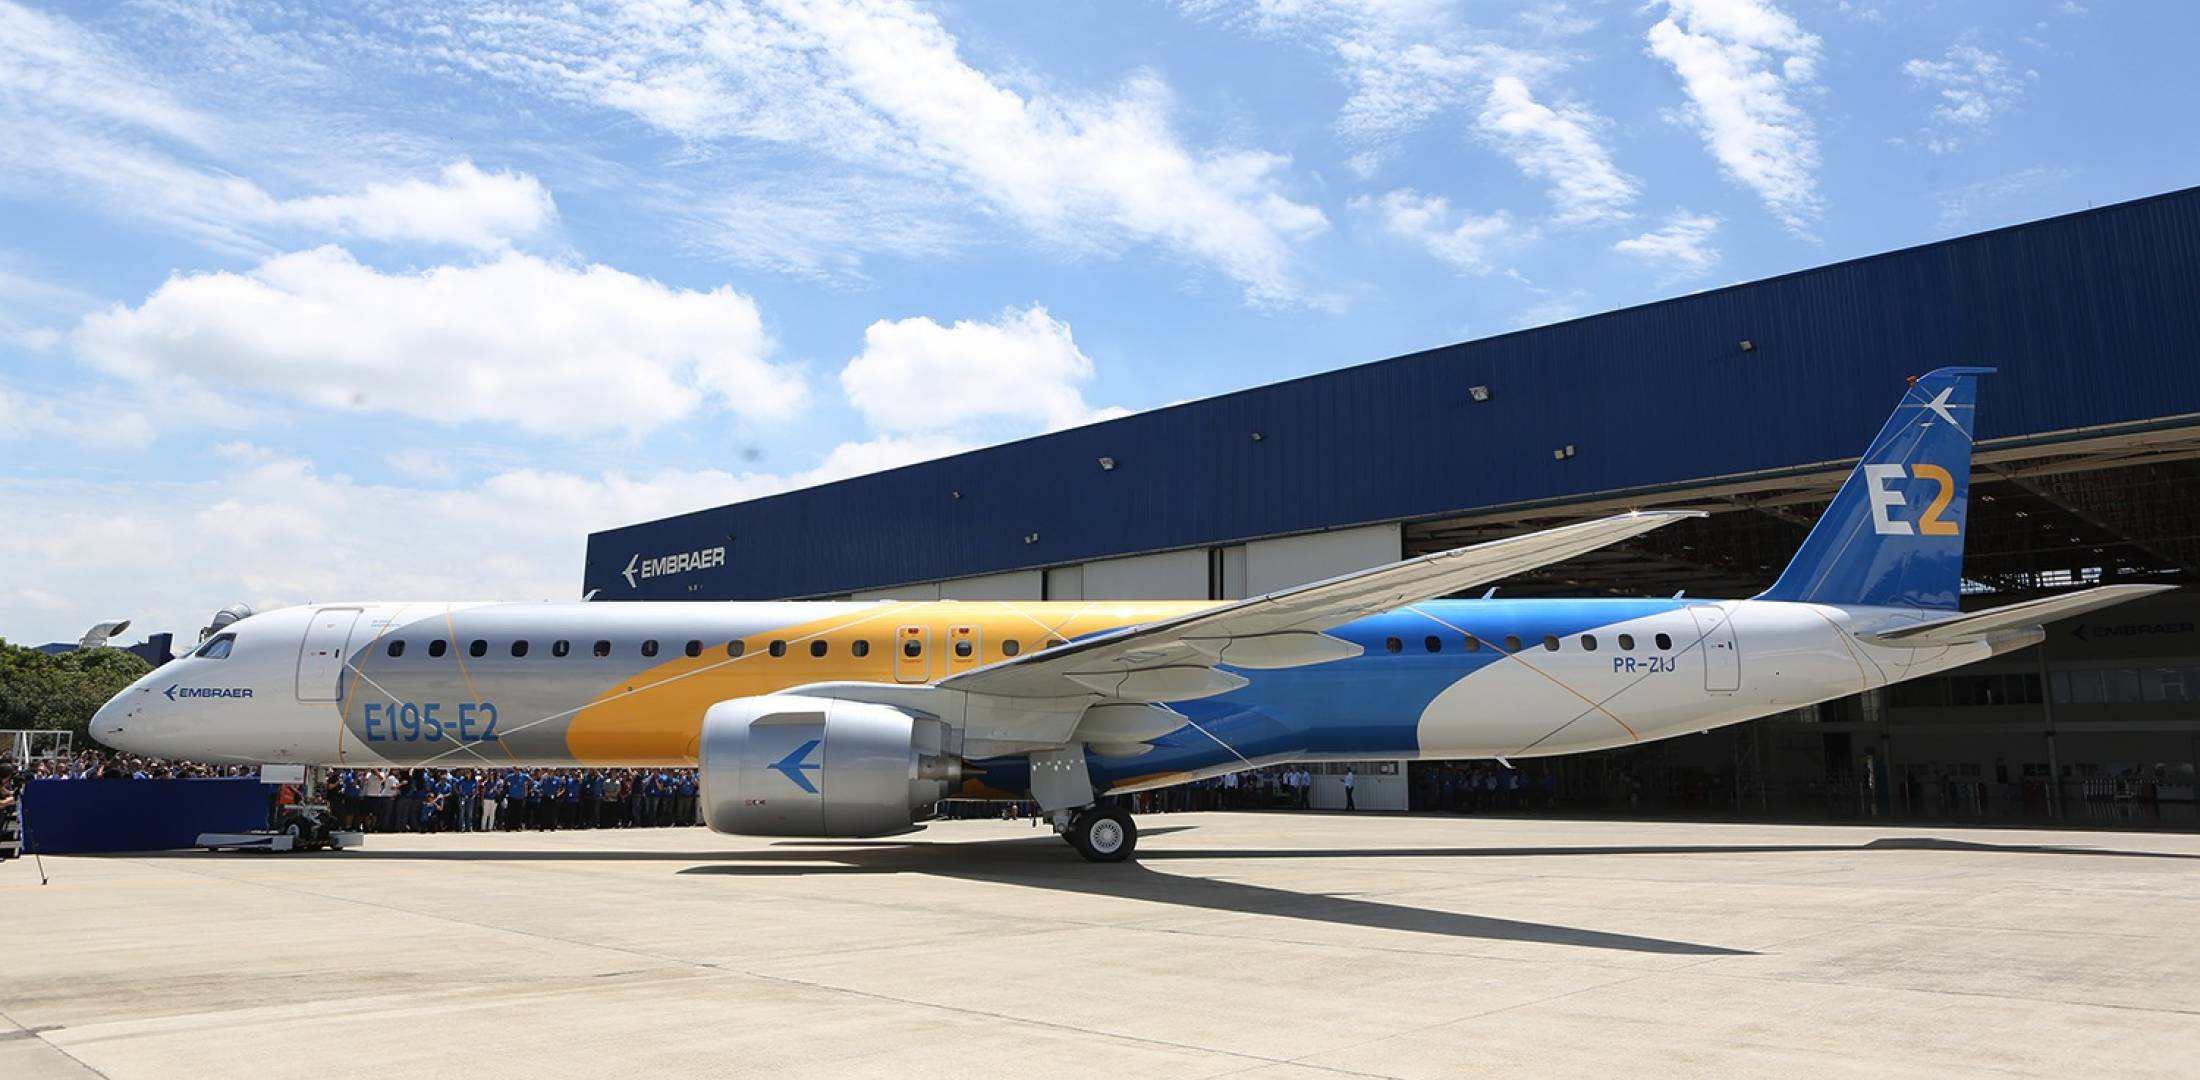 Embraer E195-E2 rolled out